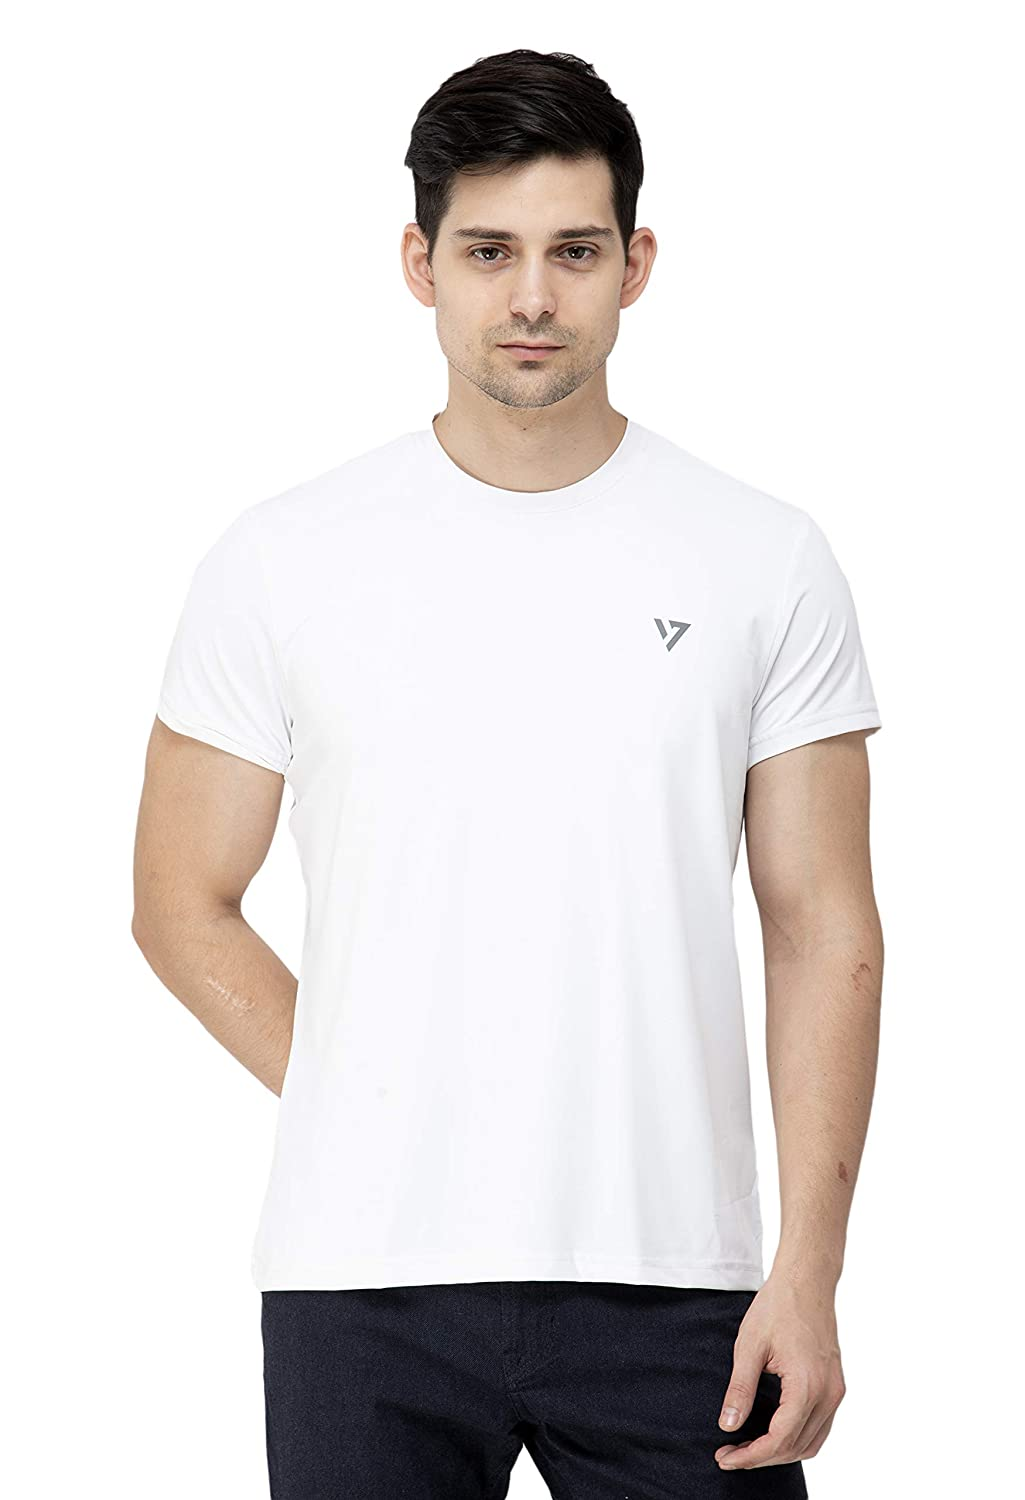 Seven by M.S. Dhoni Men's Classic Fit T-Shirt